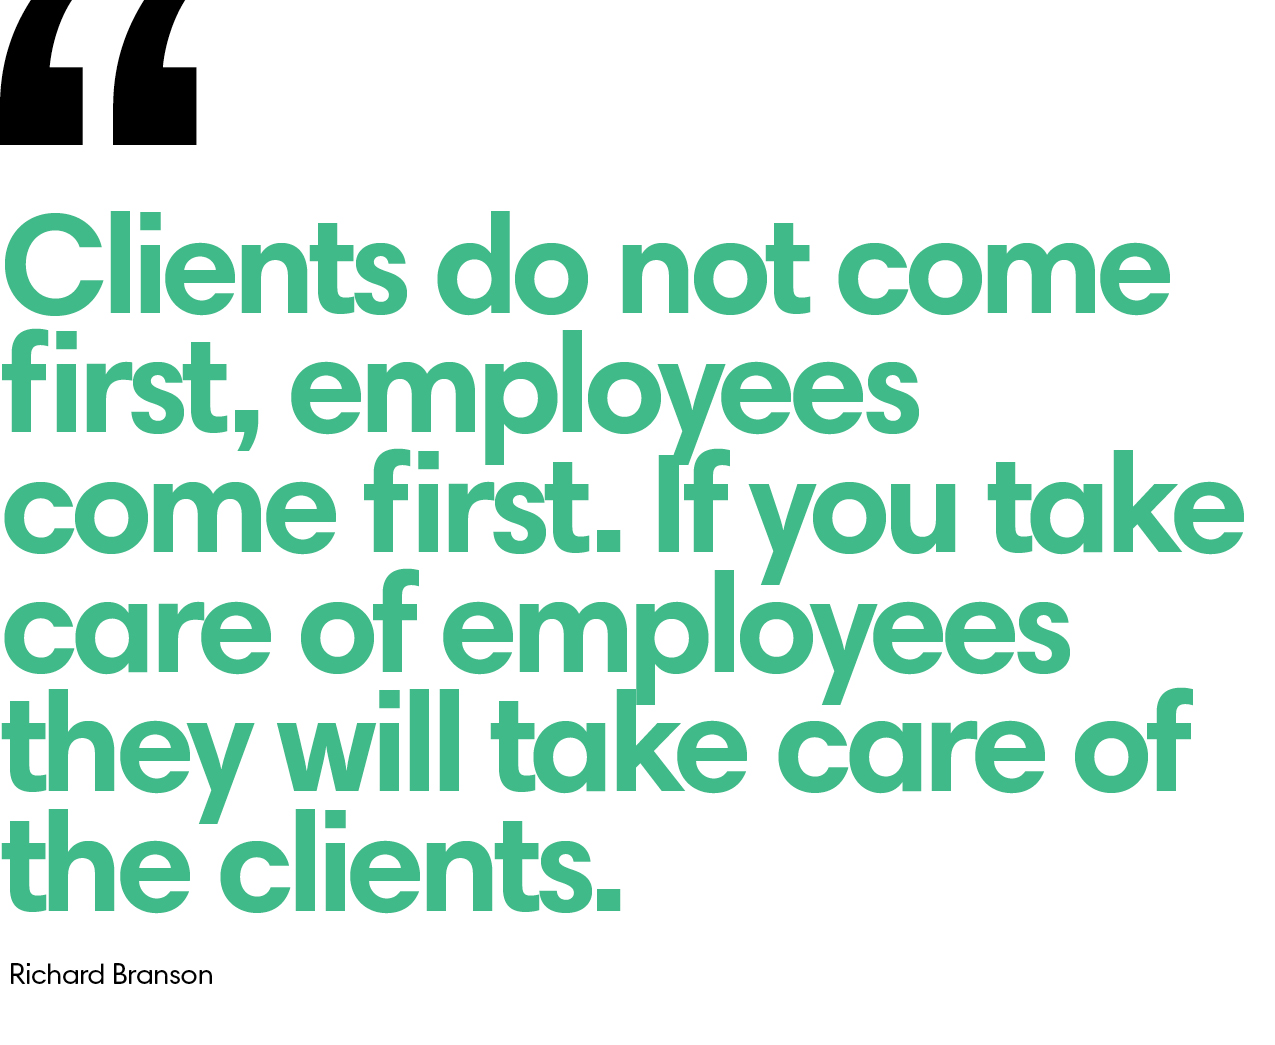 """A quote from Richard Branson: """"Clients do not come first, employees come first. If you take care of employees, they will take care of the clients."""""""